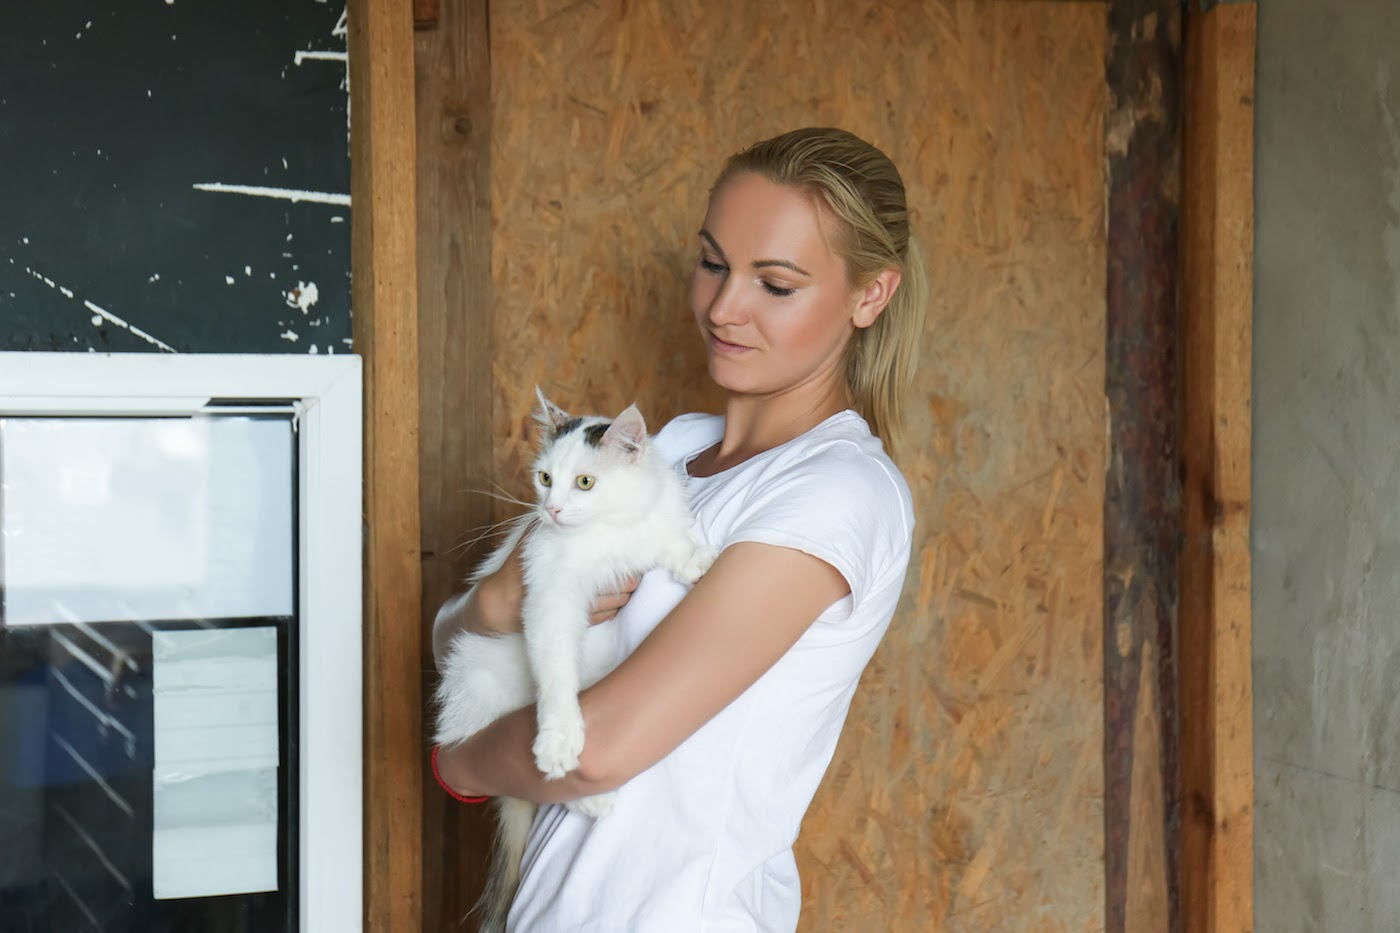 fundraising ideas for animal shelters: Woman holding a cat